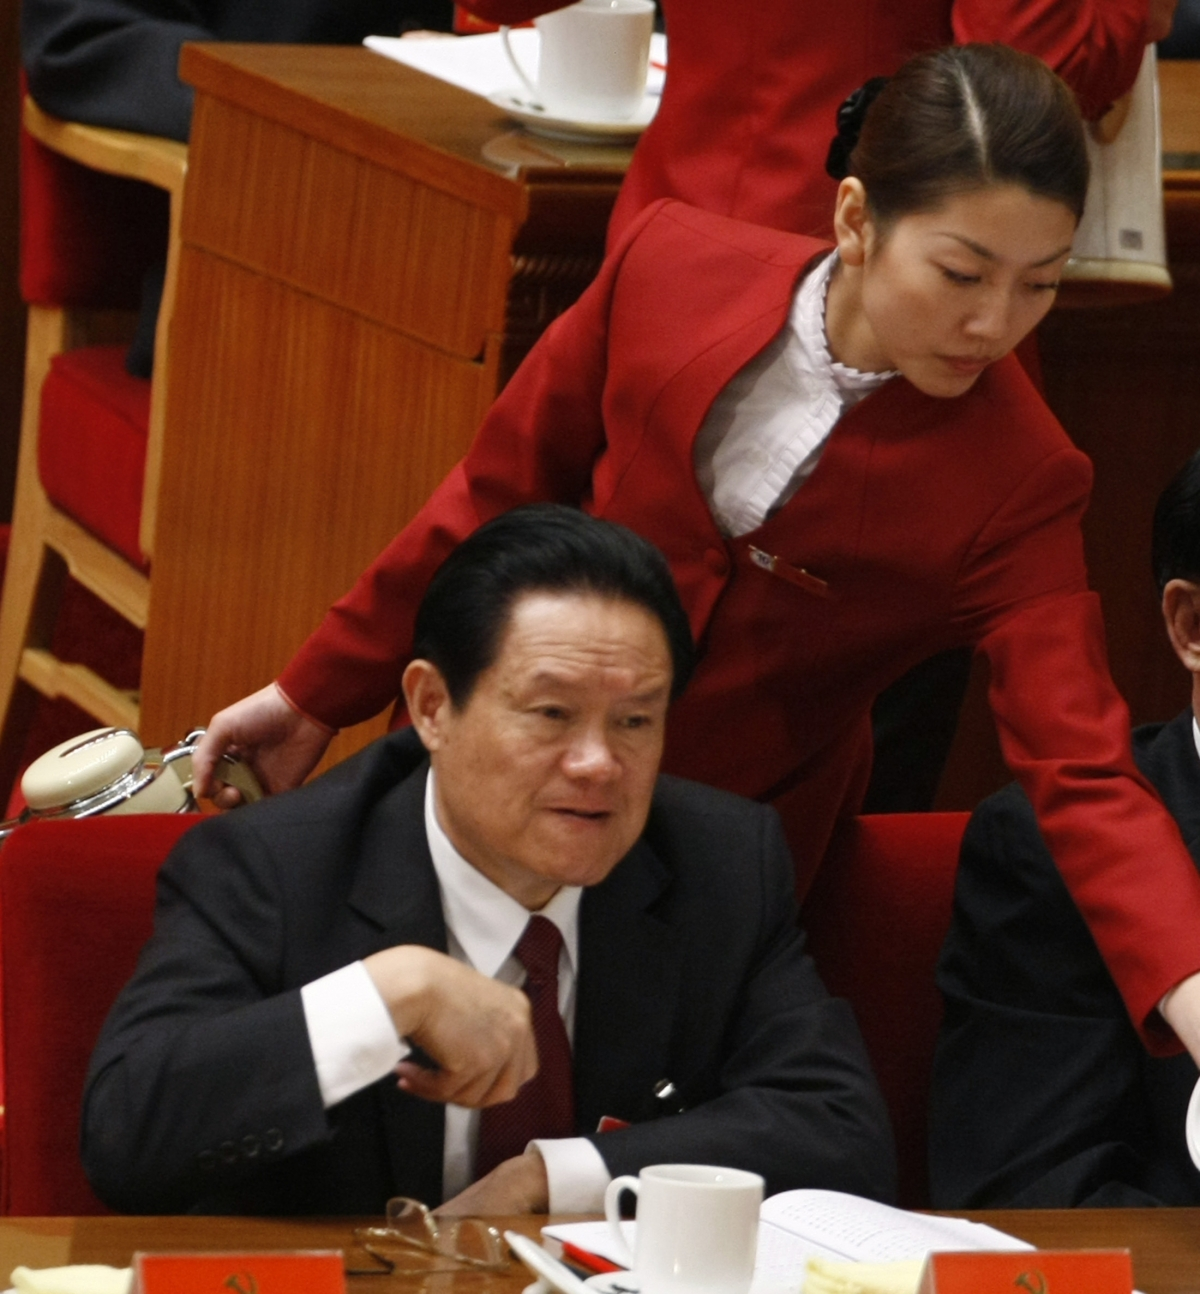 Former China Public Security Minister Zhou Yongkang attends the opening ceremony of the 17th Party Congress at the Great Hall of the People in Beijing in 2007.